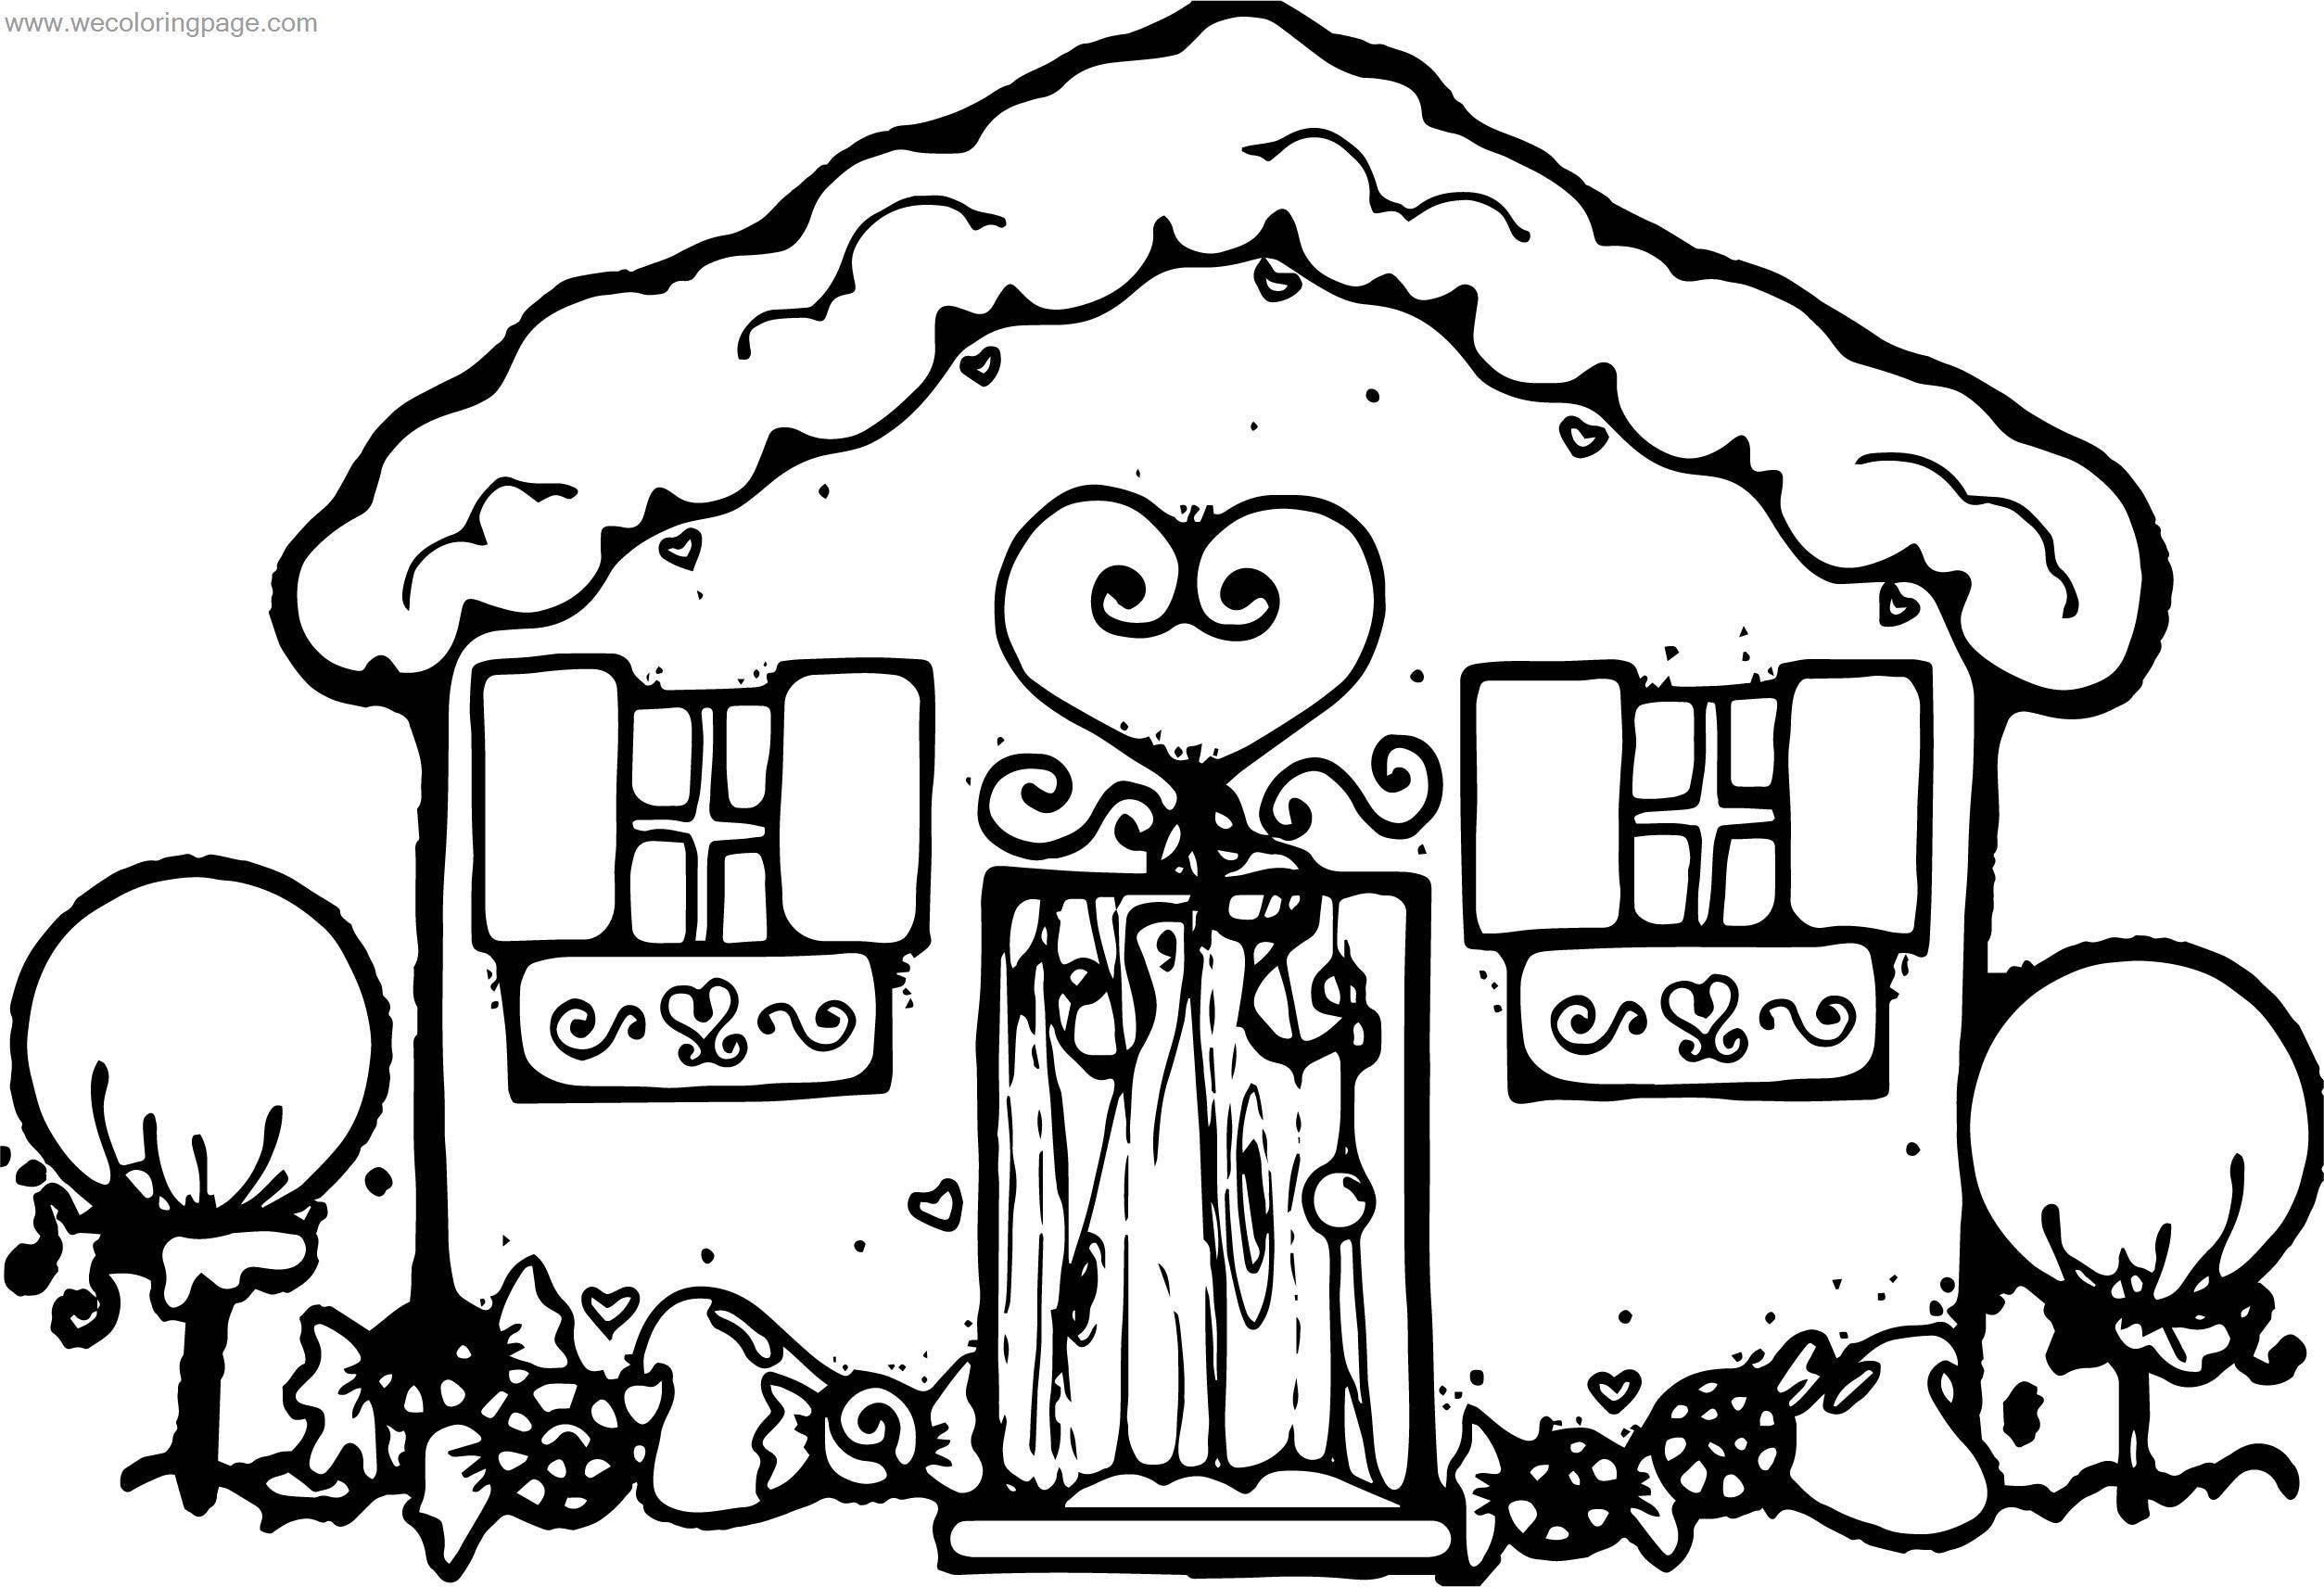 Dazzle Dec Gingerbreadhouse Gingerbread House Coloring Page